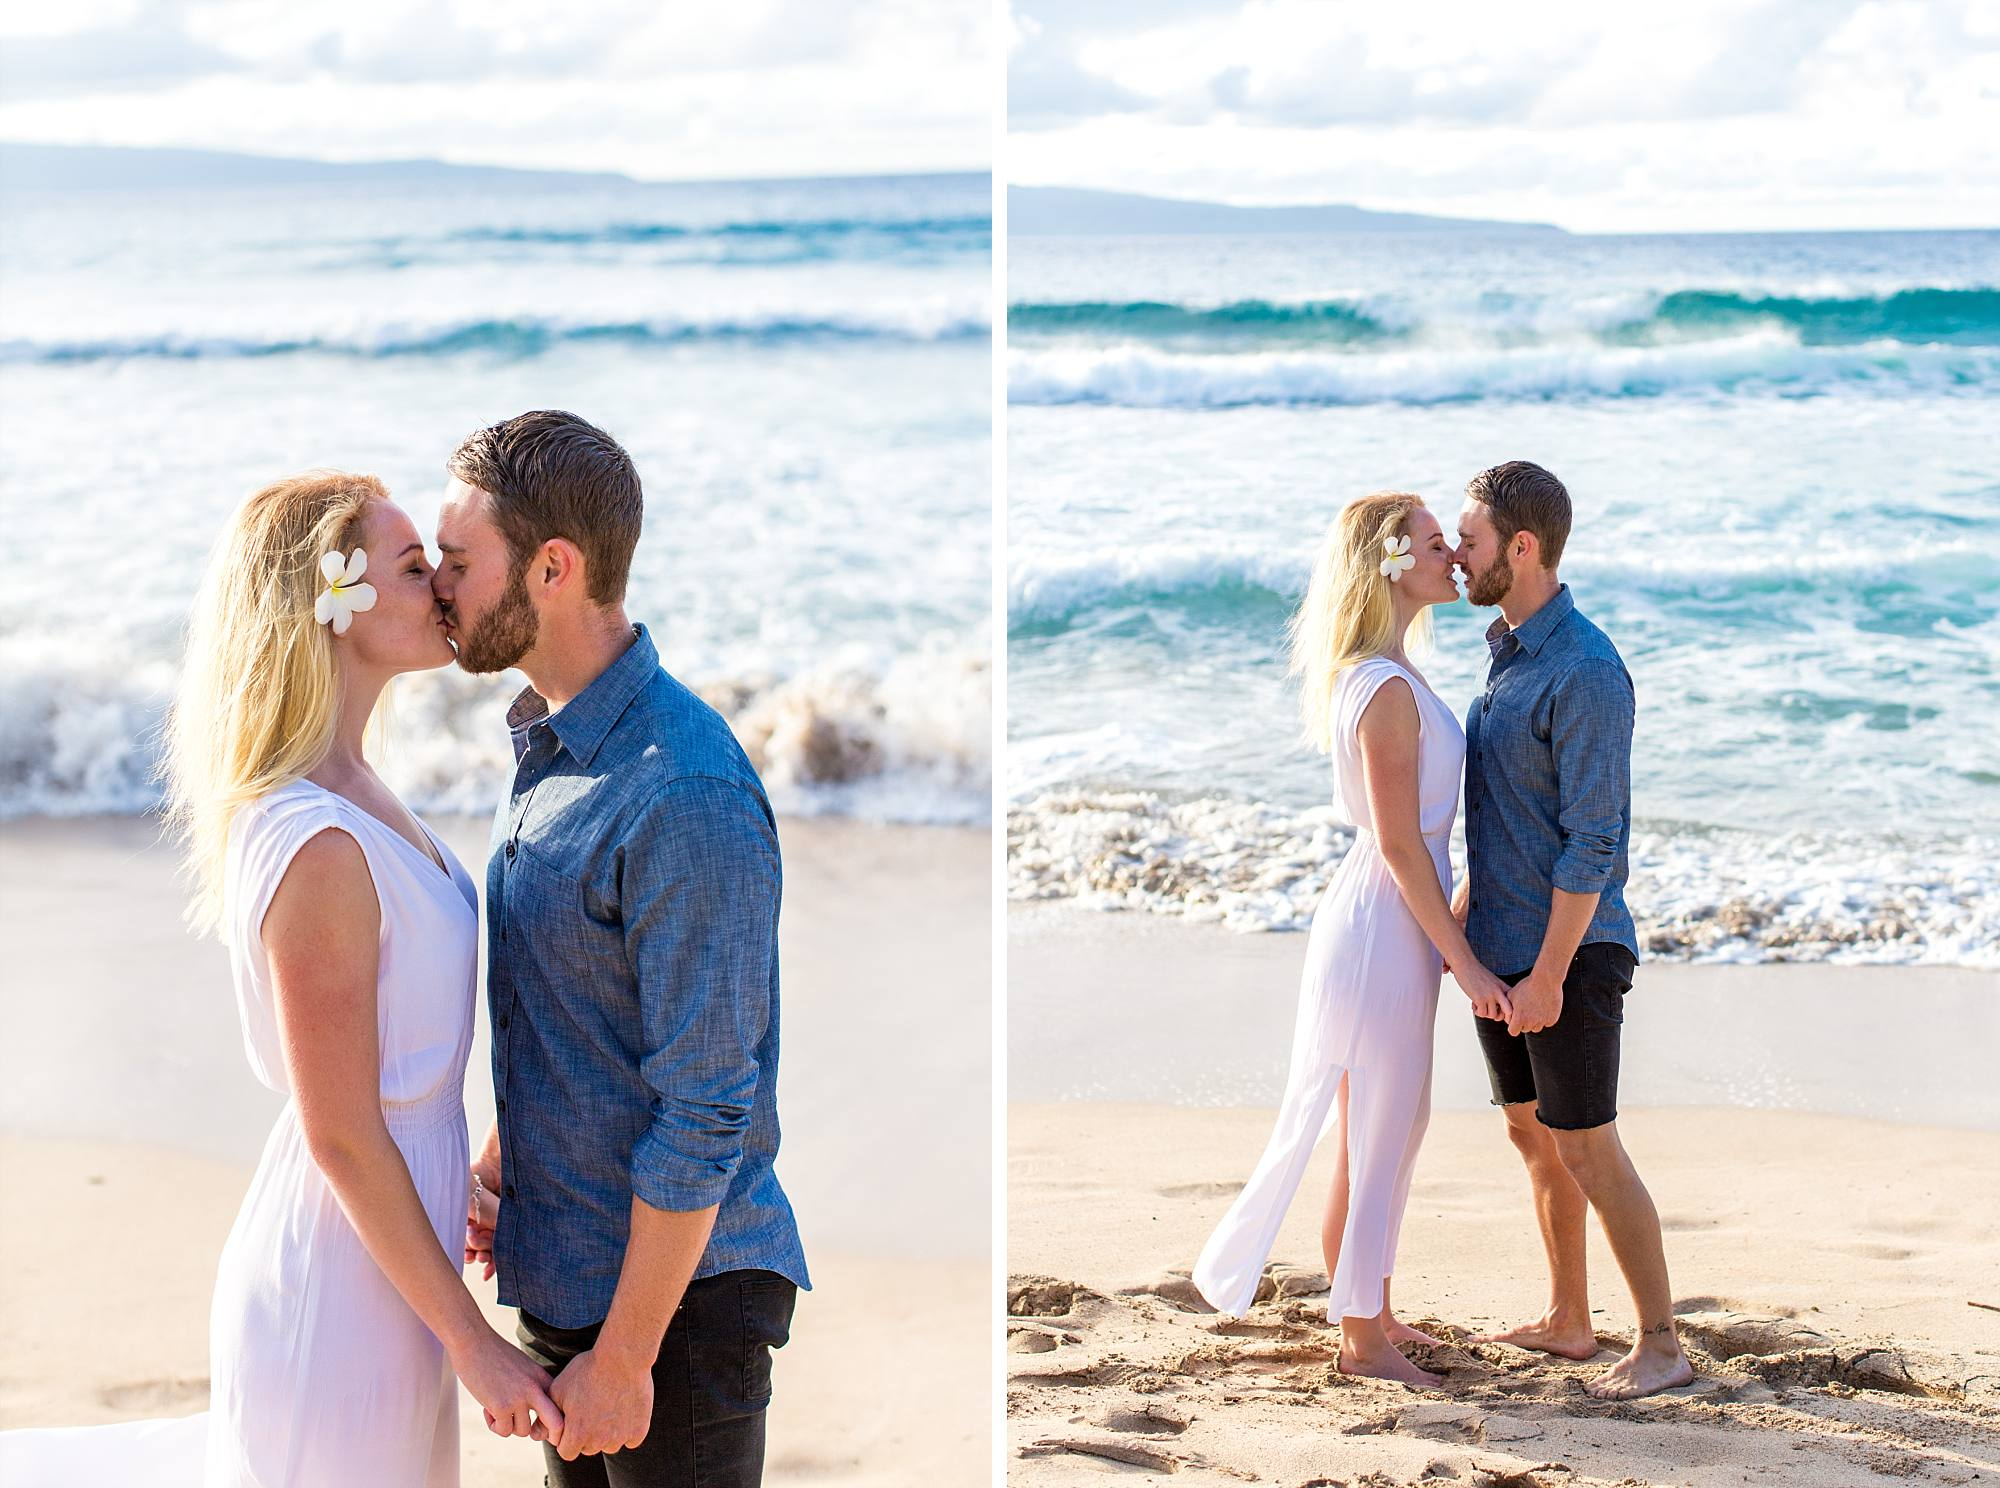 new fiances kissing on the beach